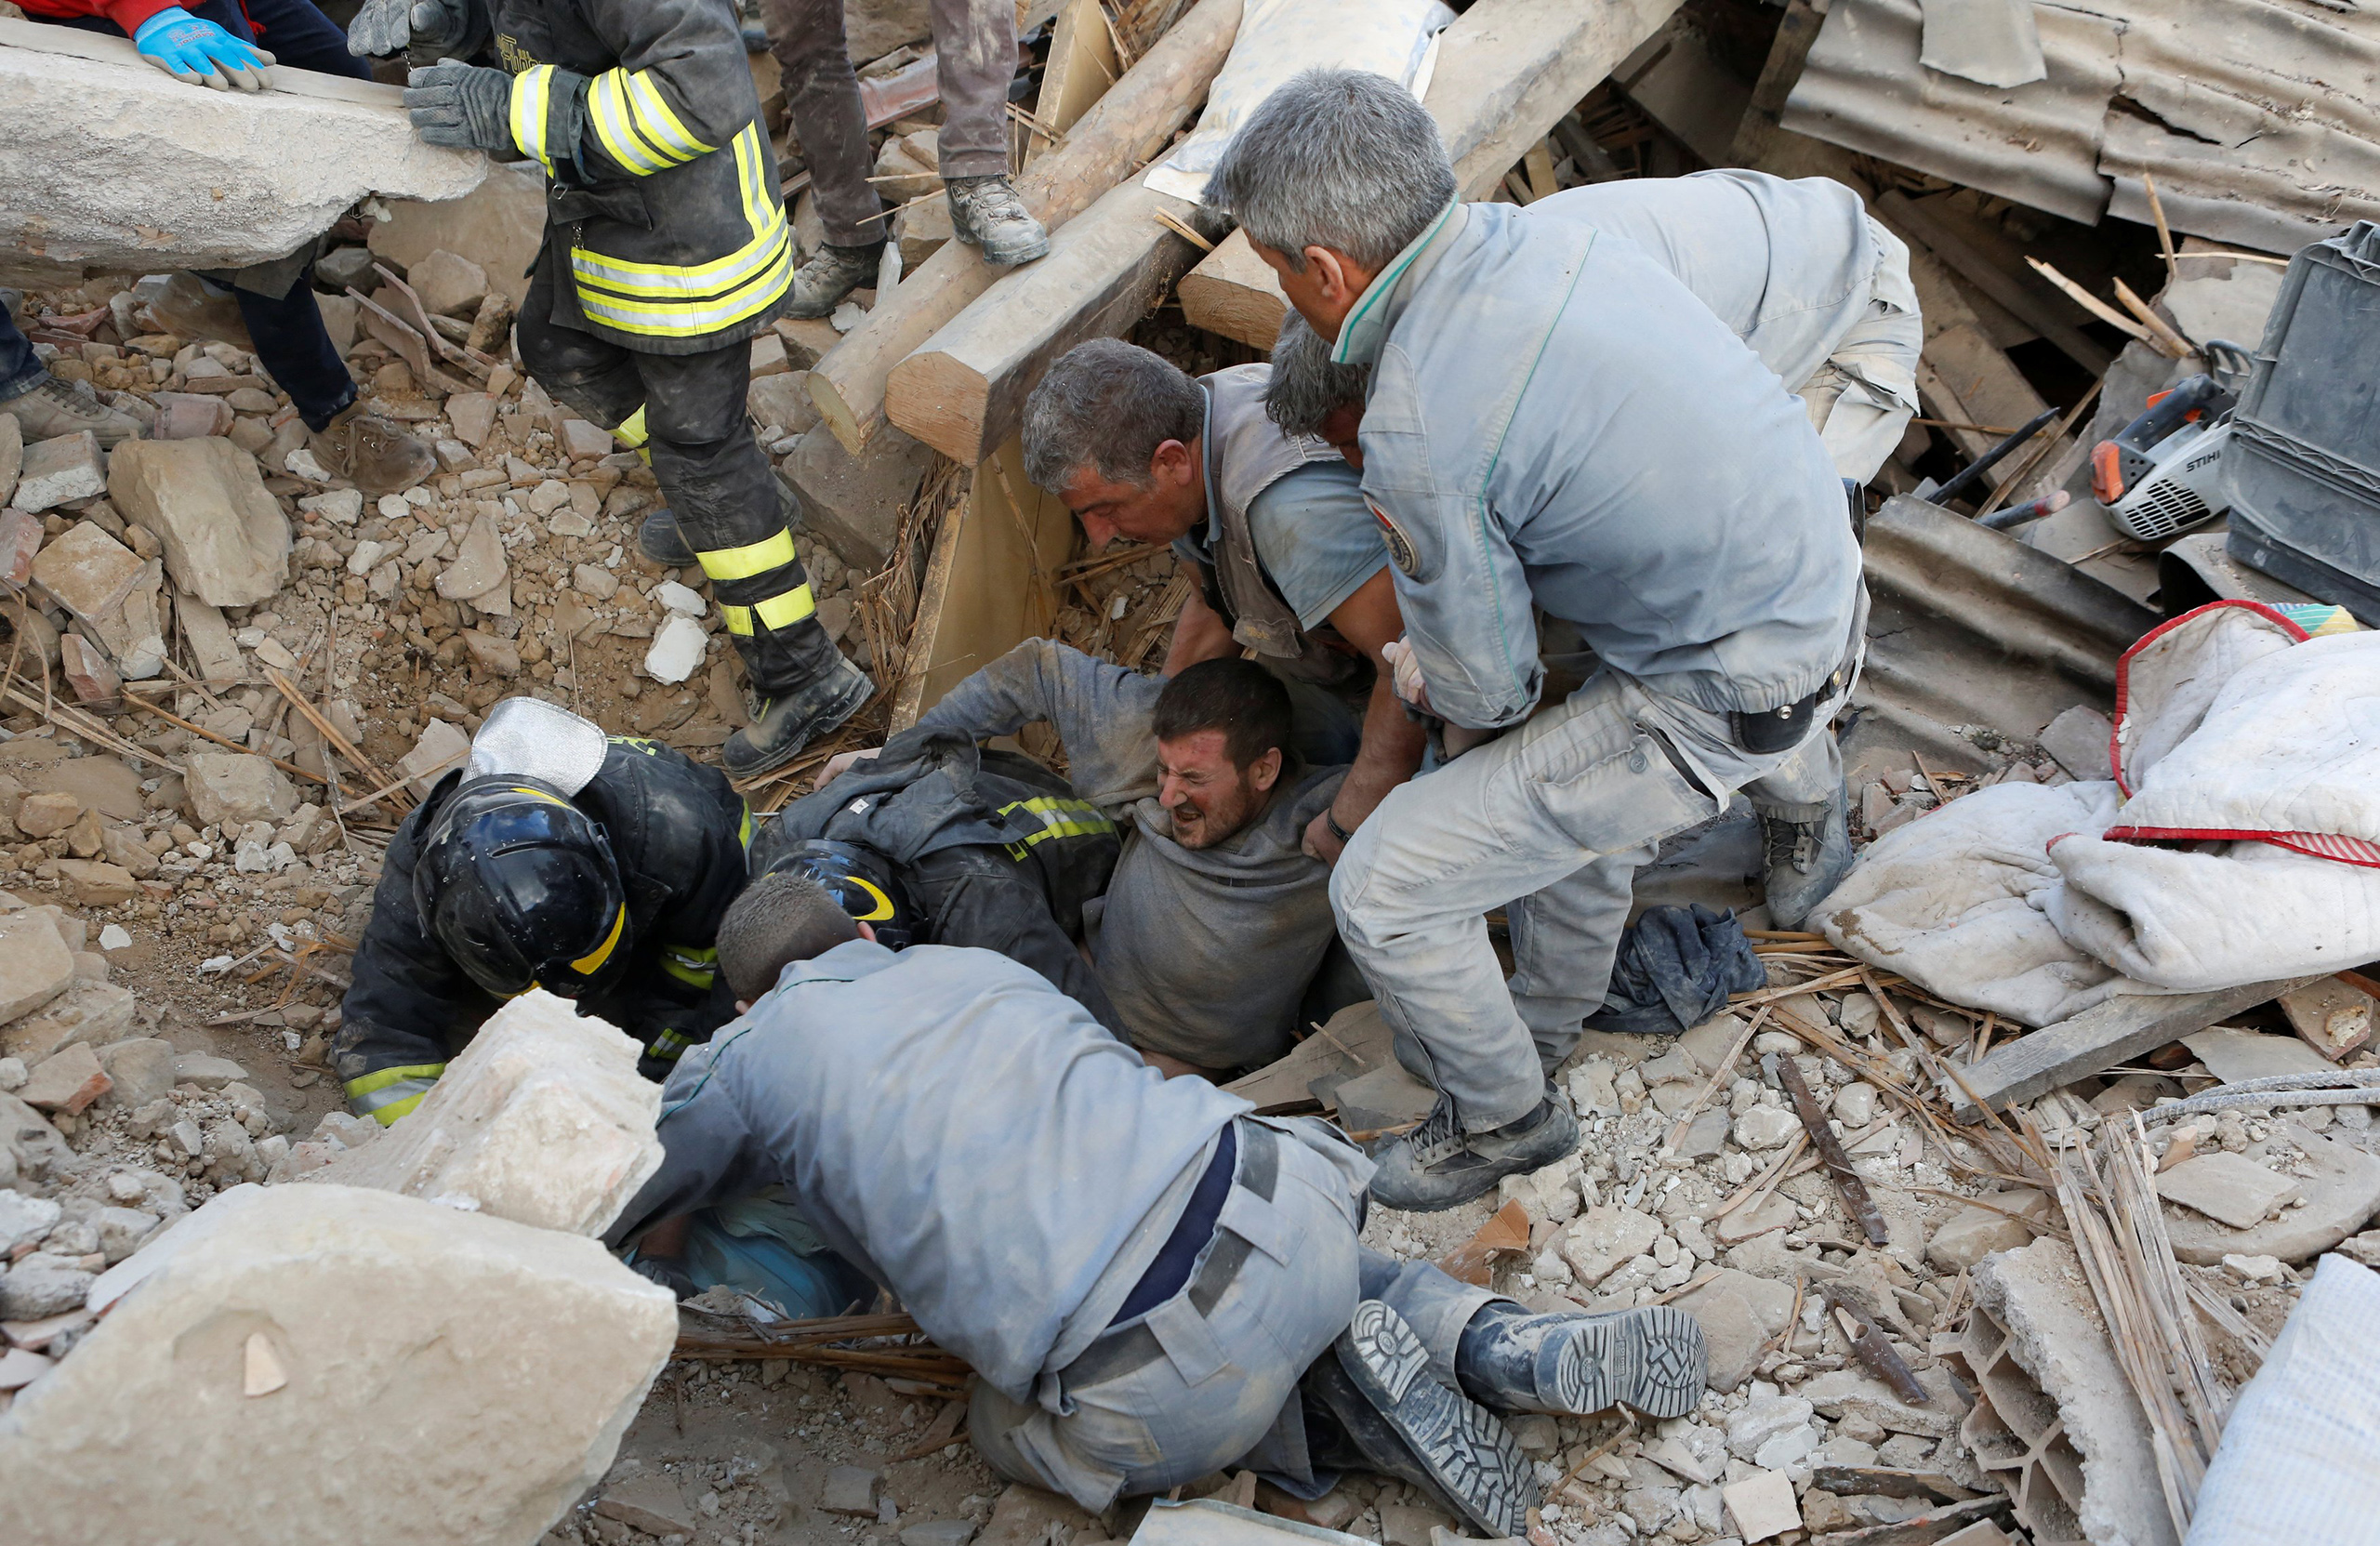 A man is rescued alive from the ruins following an earthquake in Amatrice, central Italy, Aug. 24, 2016.